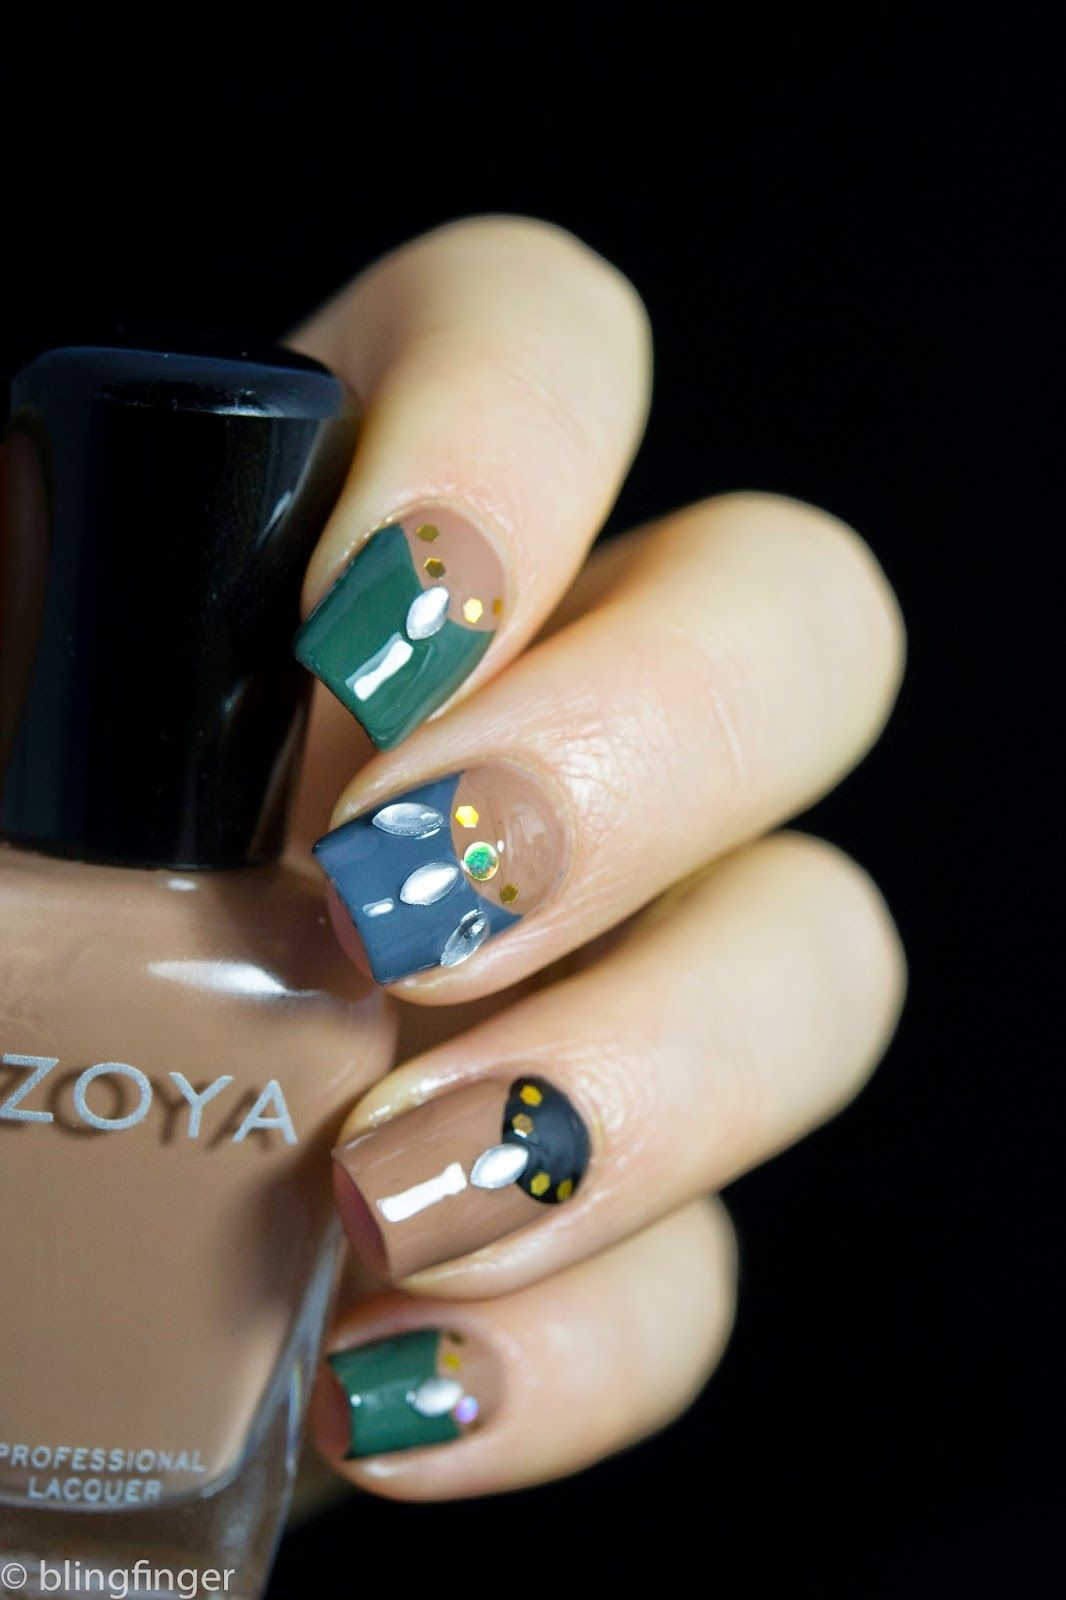 Decorated Half-Moon Manicure. http://www.blingfinger.net/2014/12/decorated-half-moon-manicure.html